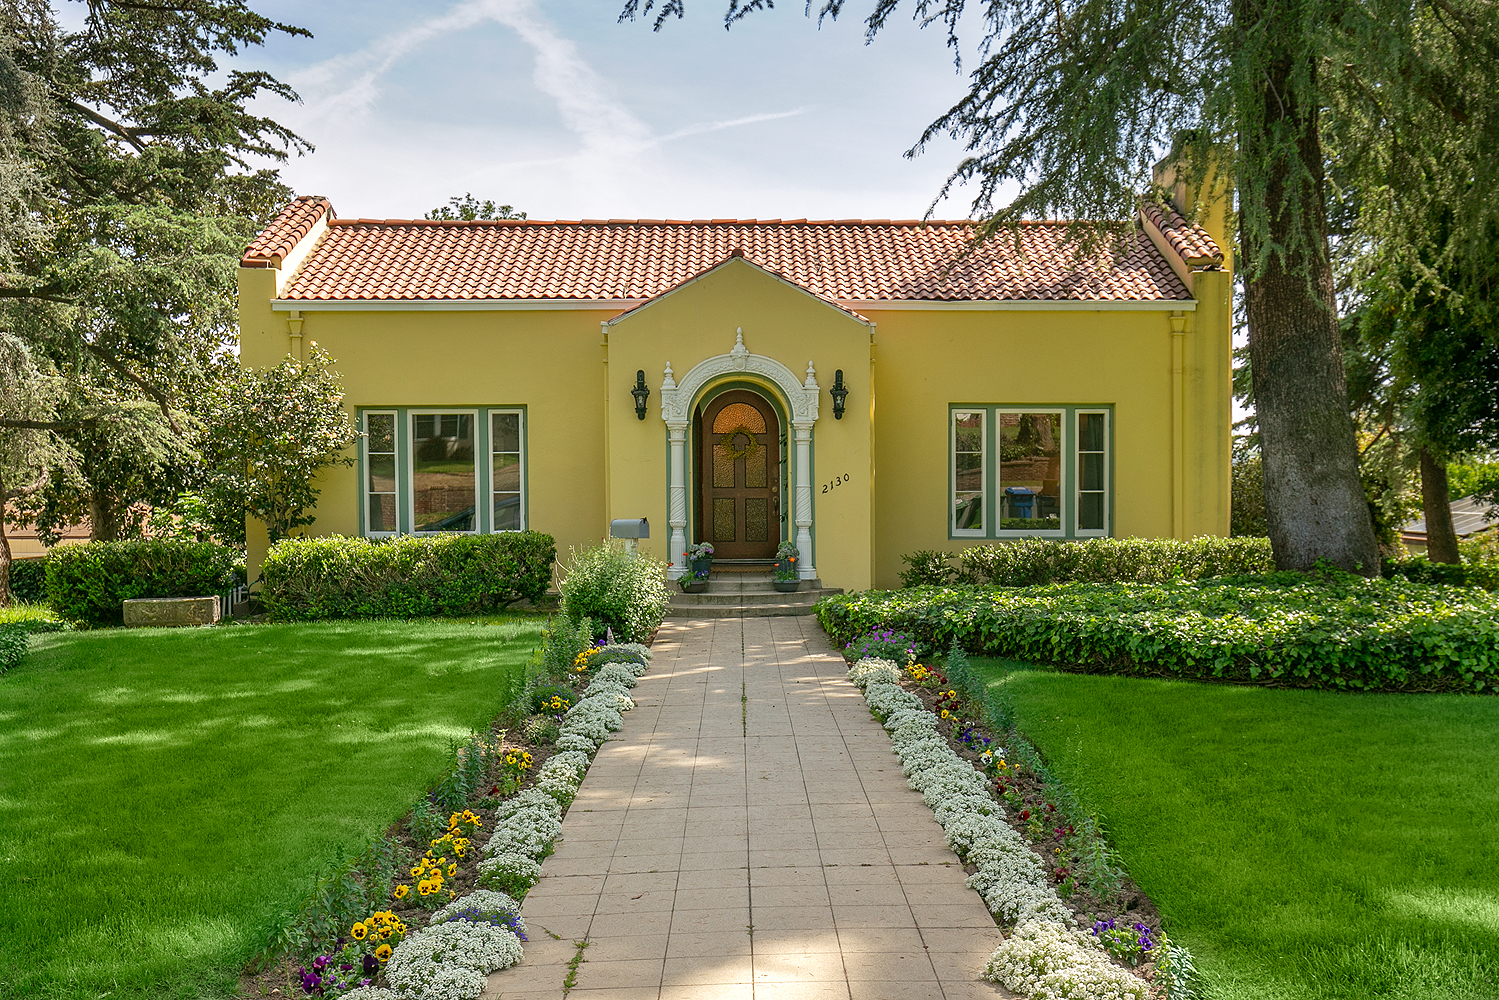 2130 Hill Dr Los Angeles CA 90041 - $1,492,000